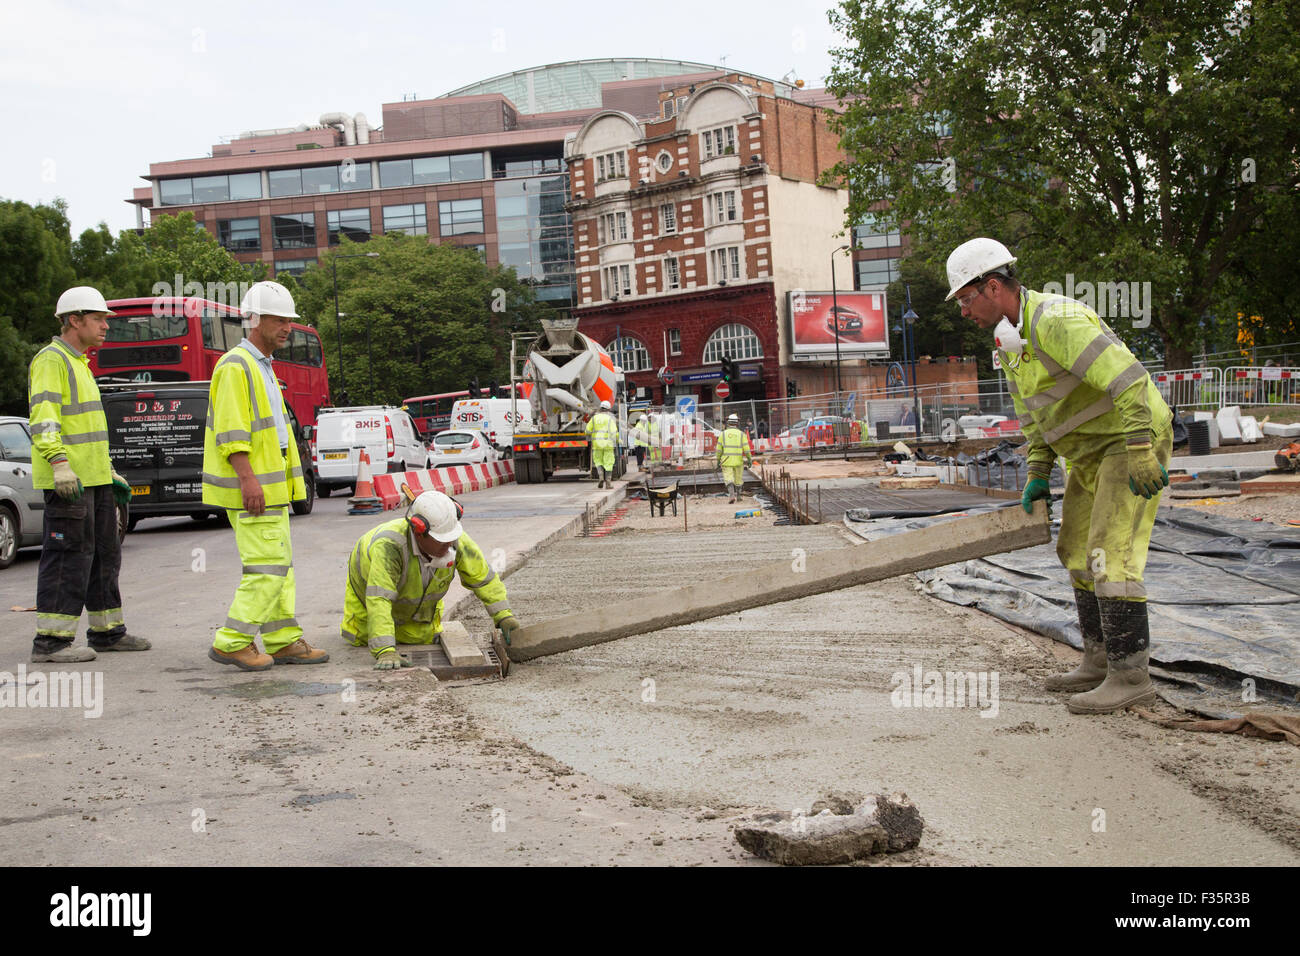 Workers begin to modernise the northern roundabout at Elephant & Castle, London. - Stock Image